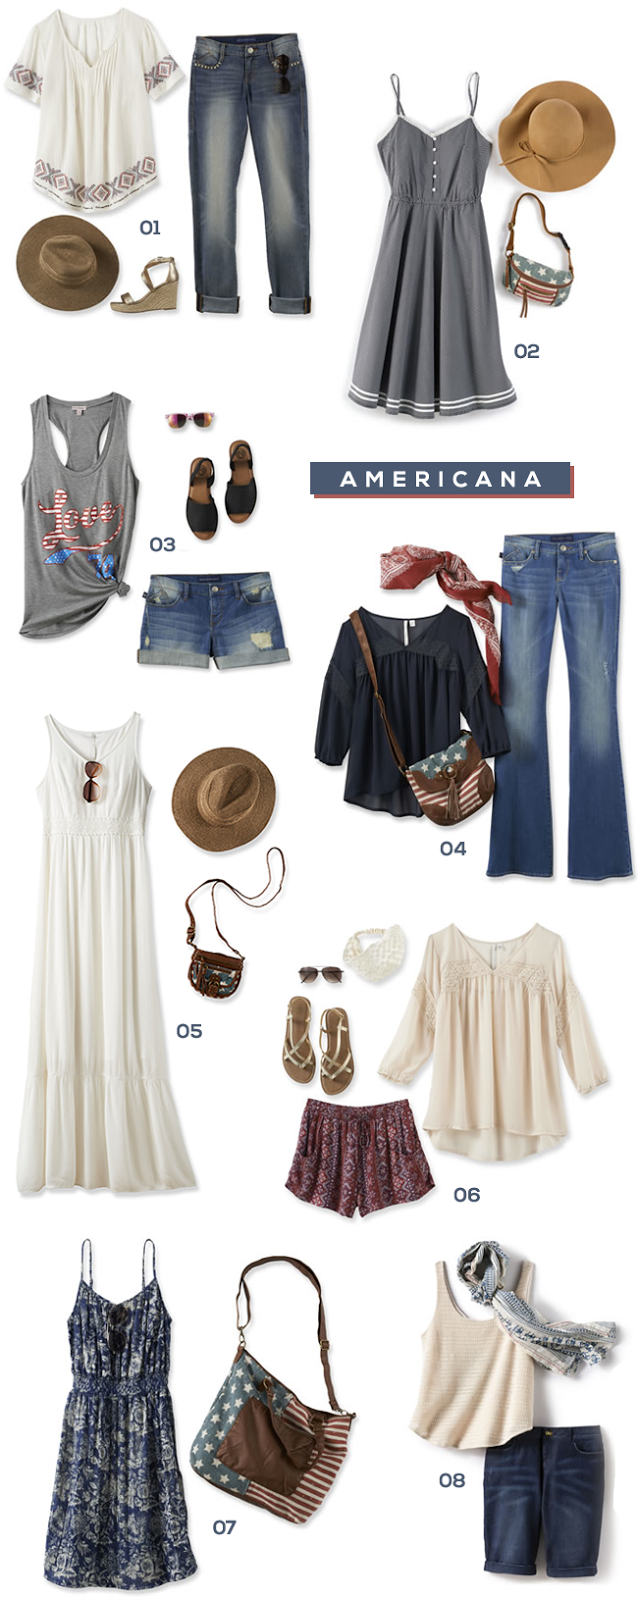 Summer Style Trend: Americana (via Bubby and Bean)